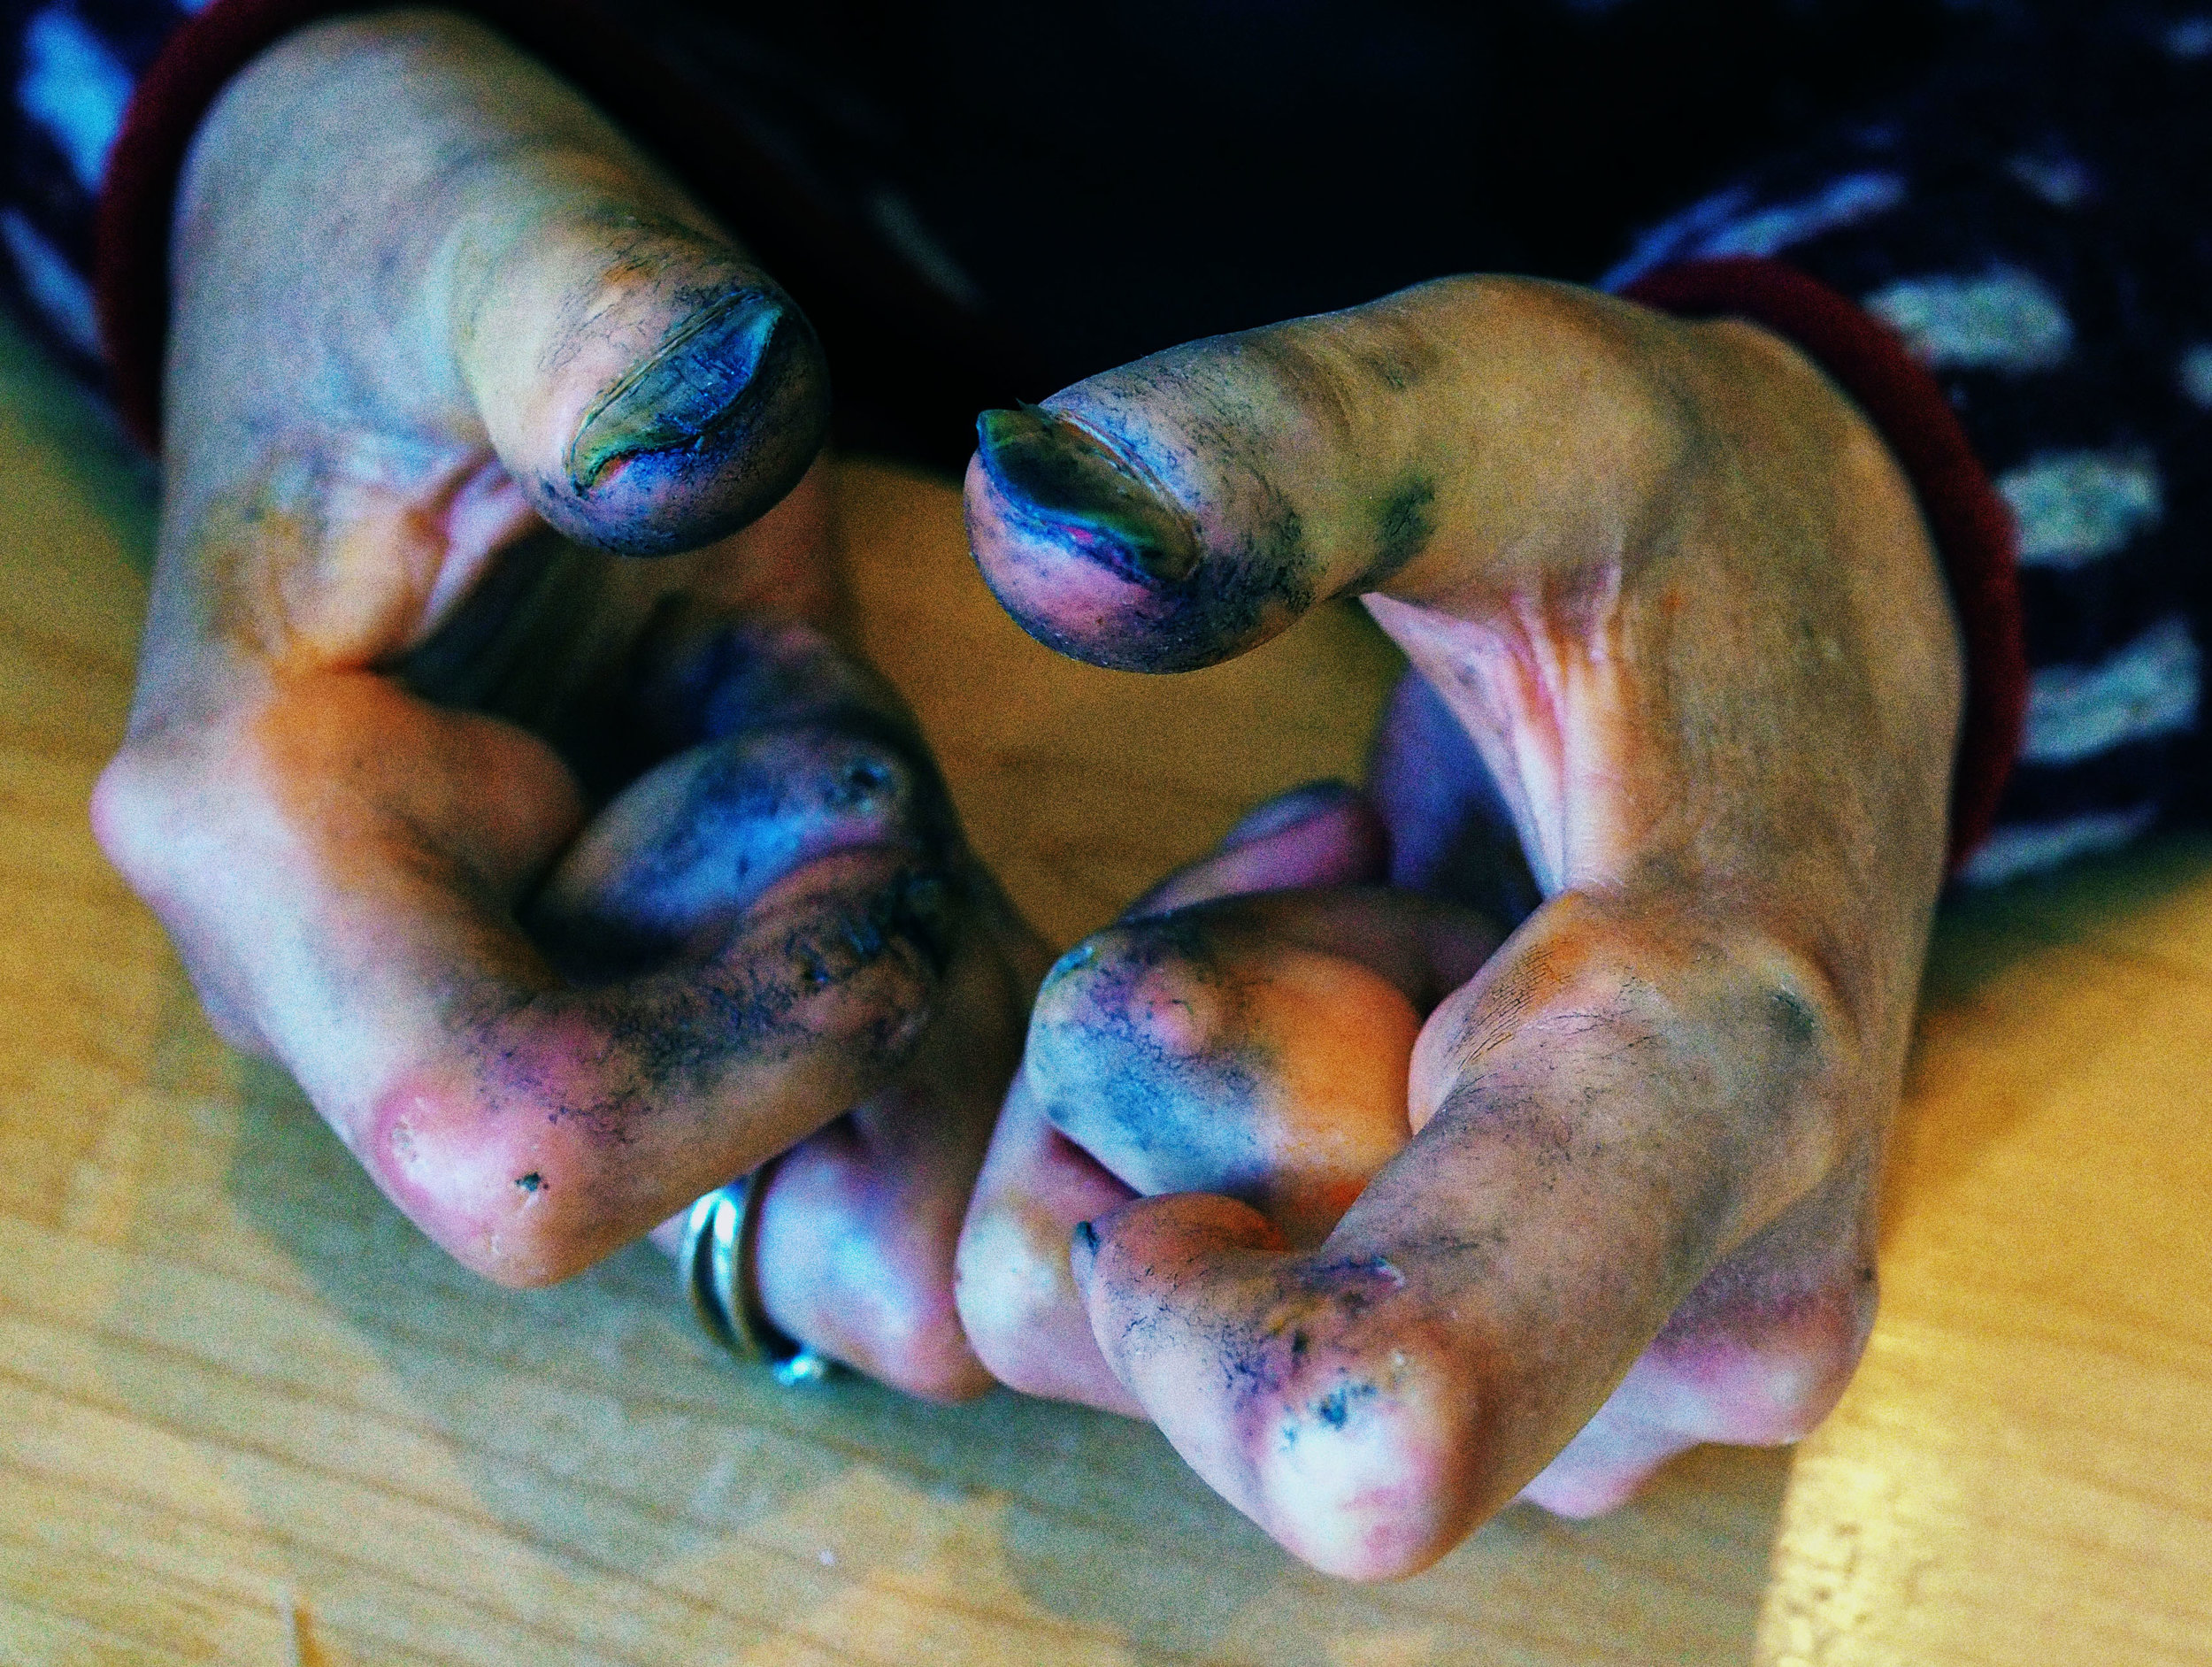 My ink-covered hands fully extended   Photo credit  Katinka Neuhof